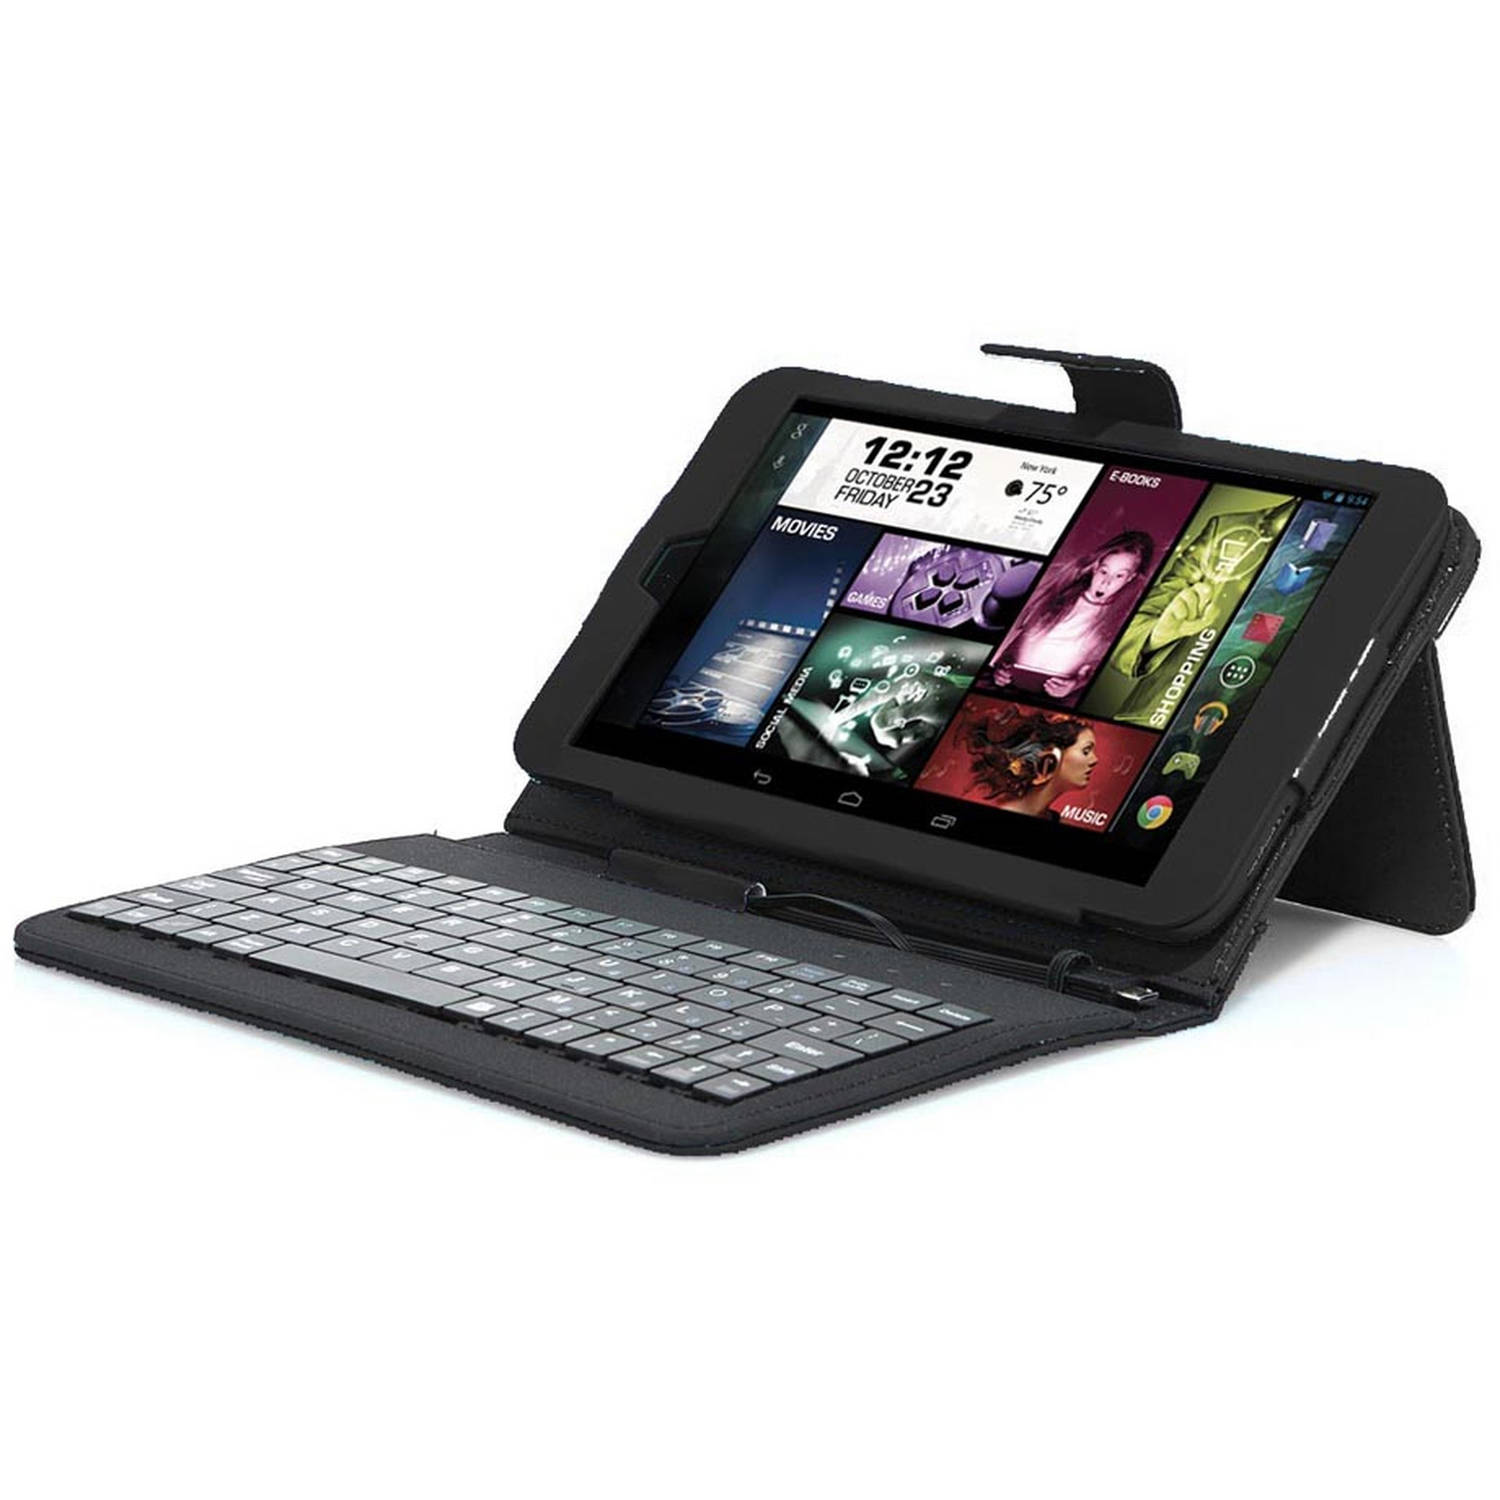 "Visual Land Prestige Elite 8"" Tablet 16GB Quad Core Case Keyboard"